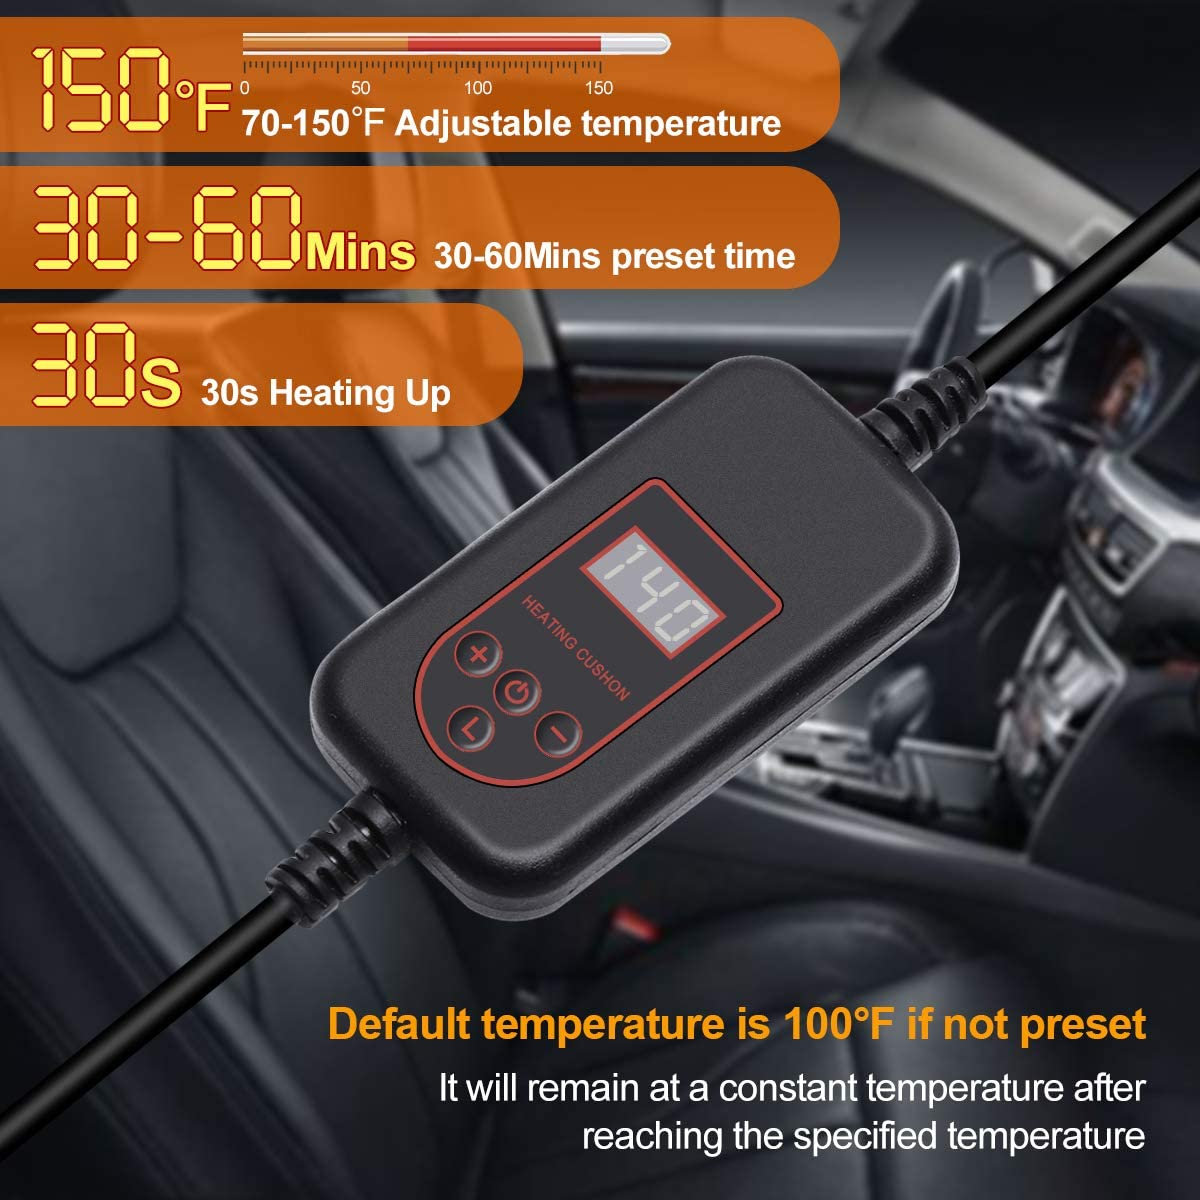 2019 Winter Universal Car Seat Heater for Full Back and Seat Audew Heated Car Seat Cushion DC 12V Heated Car Seat Cover with Intelligent Temperature Controller /& Timer Setting